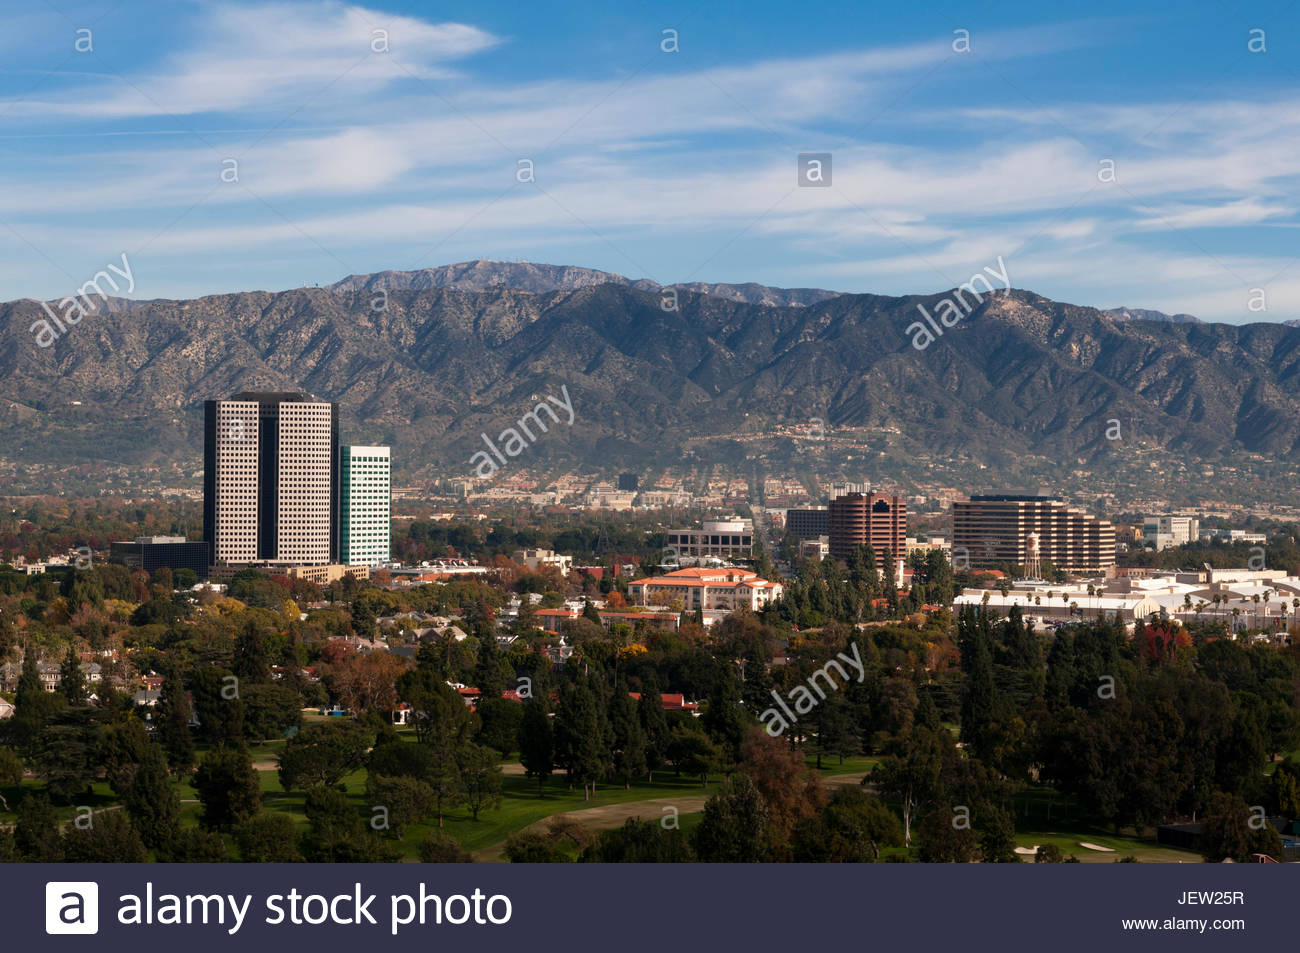 A view of Universal Studios, and the nearby mountainous landscape. - Stock Image